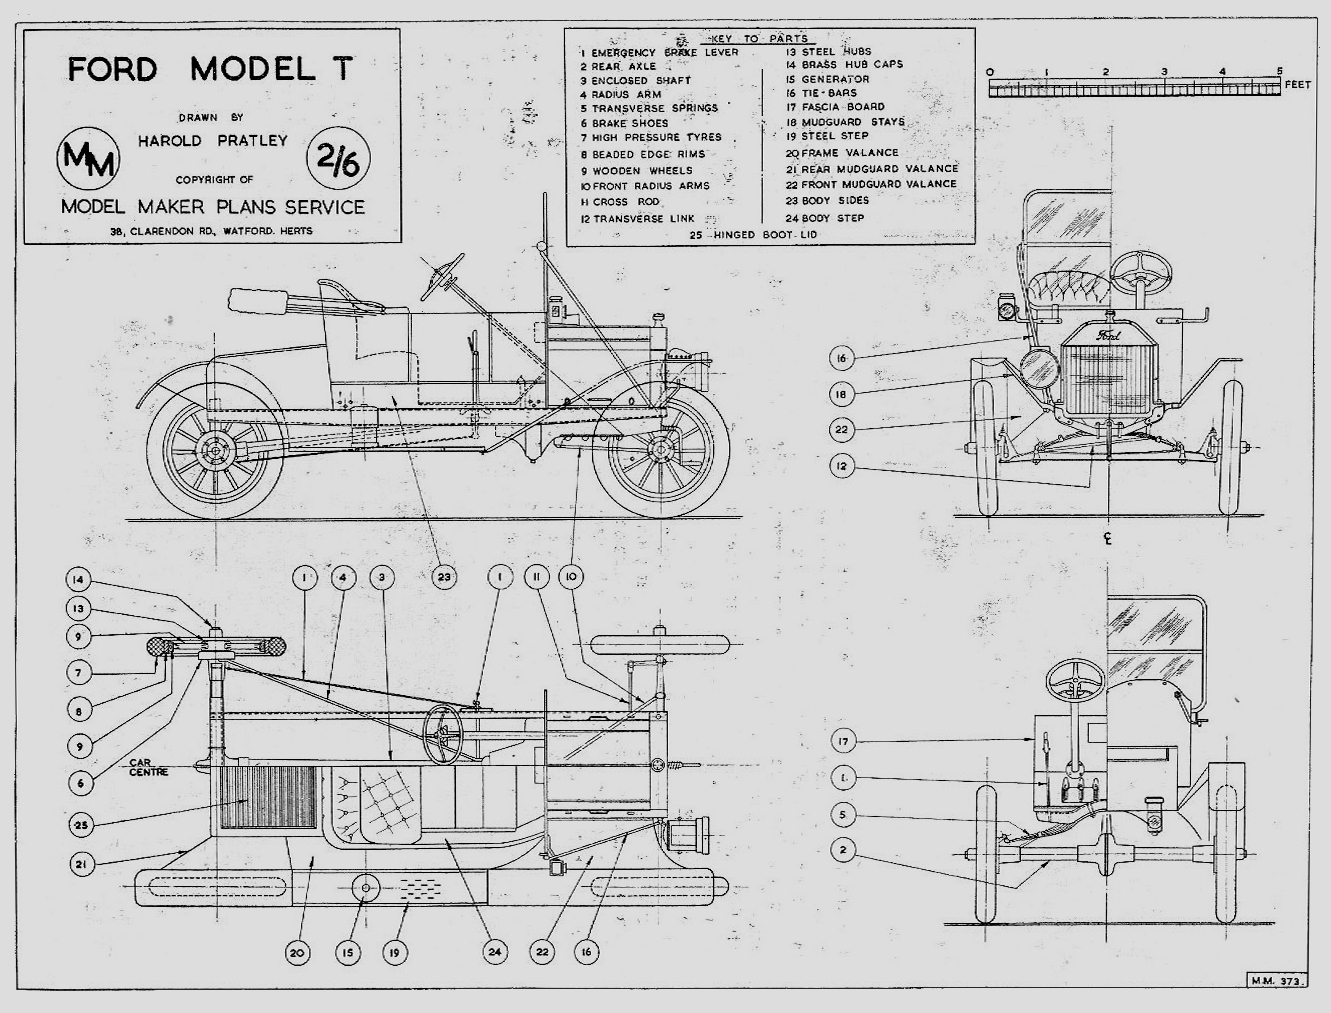 small resolution of model t ford blueprint by harold pratley